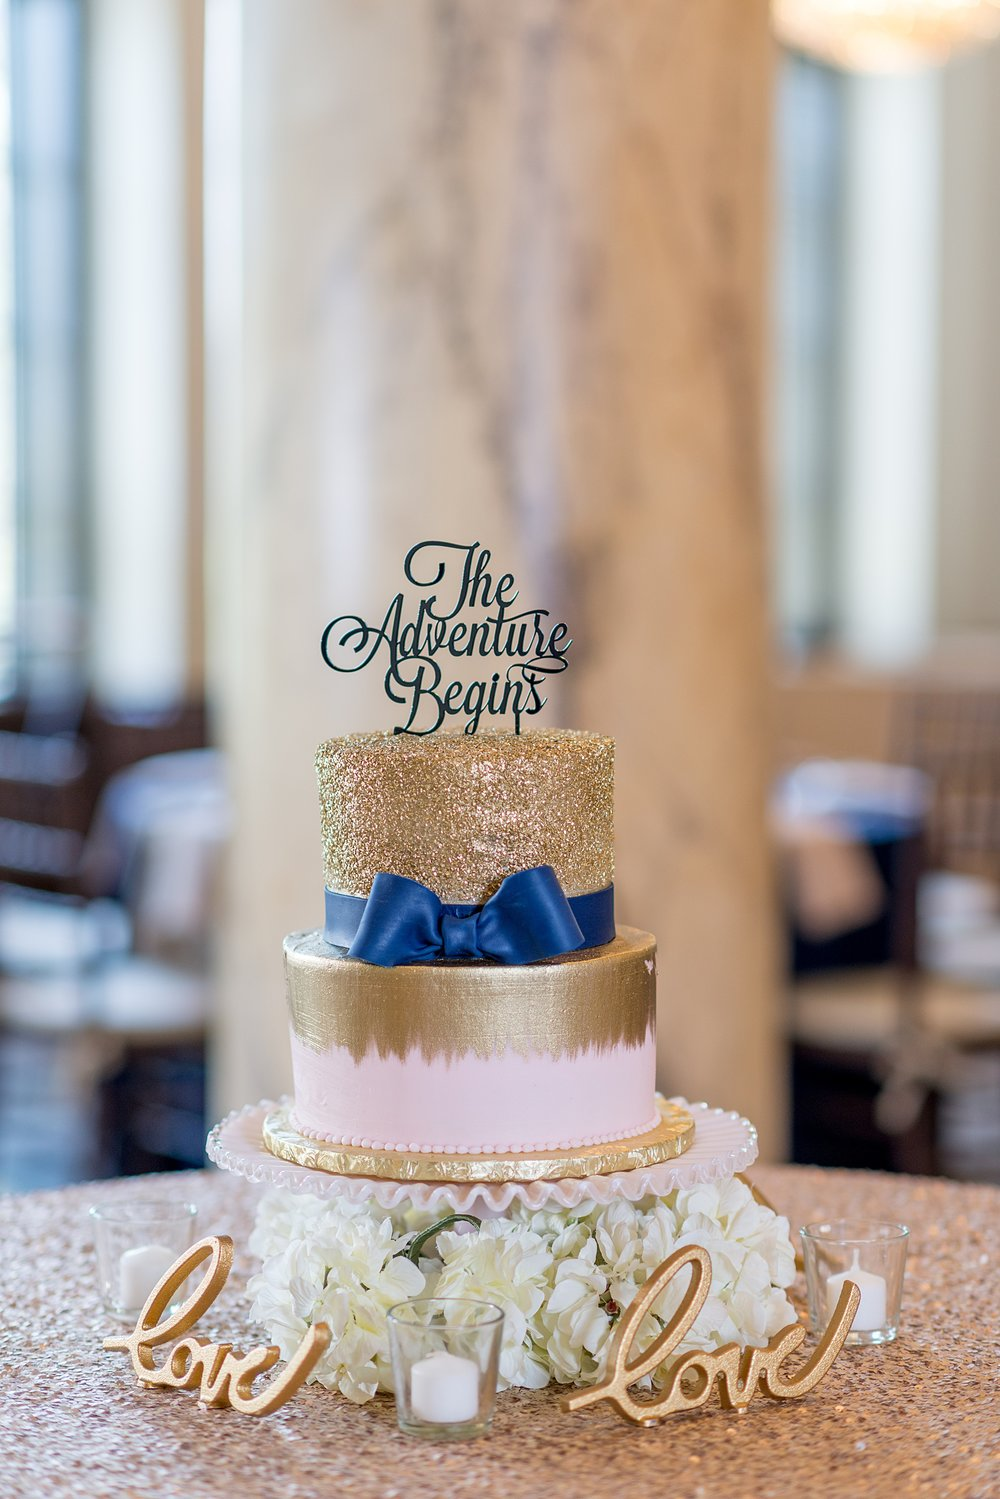 Pipers at the Marott Wedding | Indianapolis Wedding Venue | Indiana Wedding Venue | Navy and Gold Wedding Cake